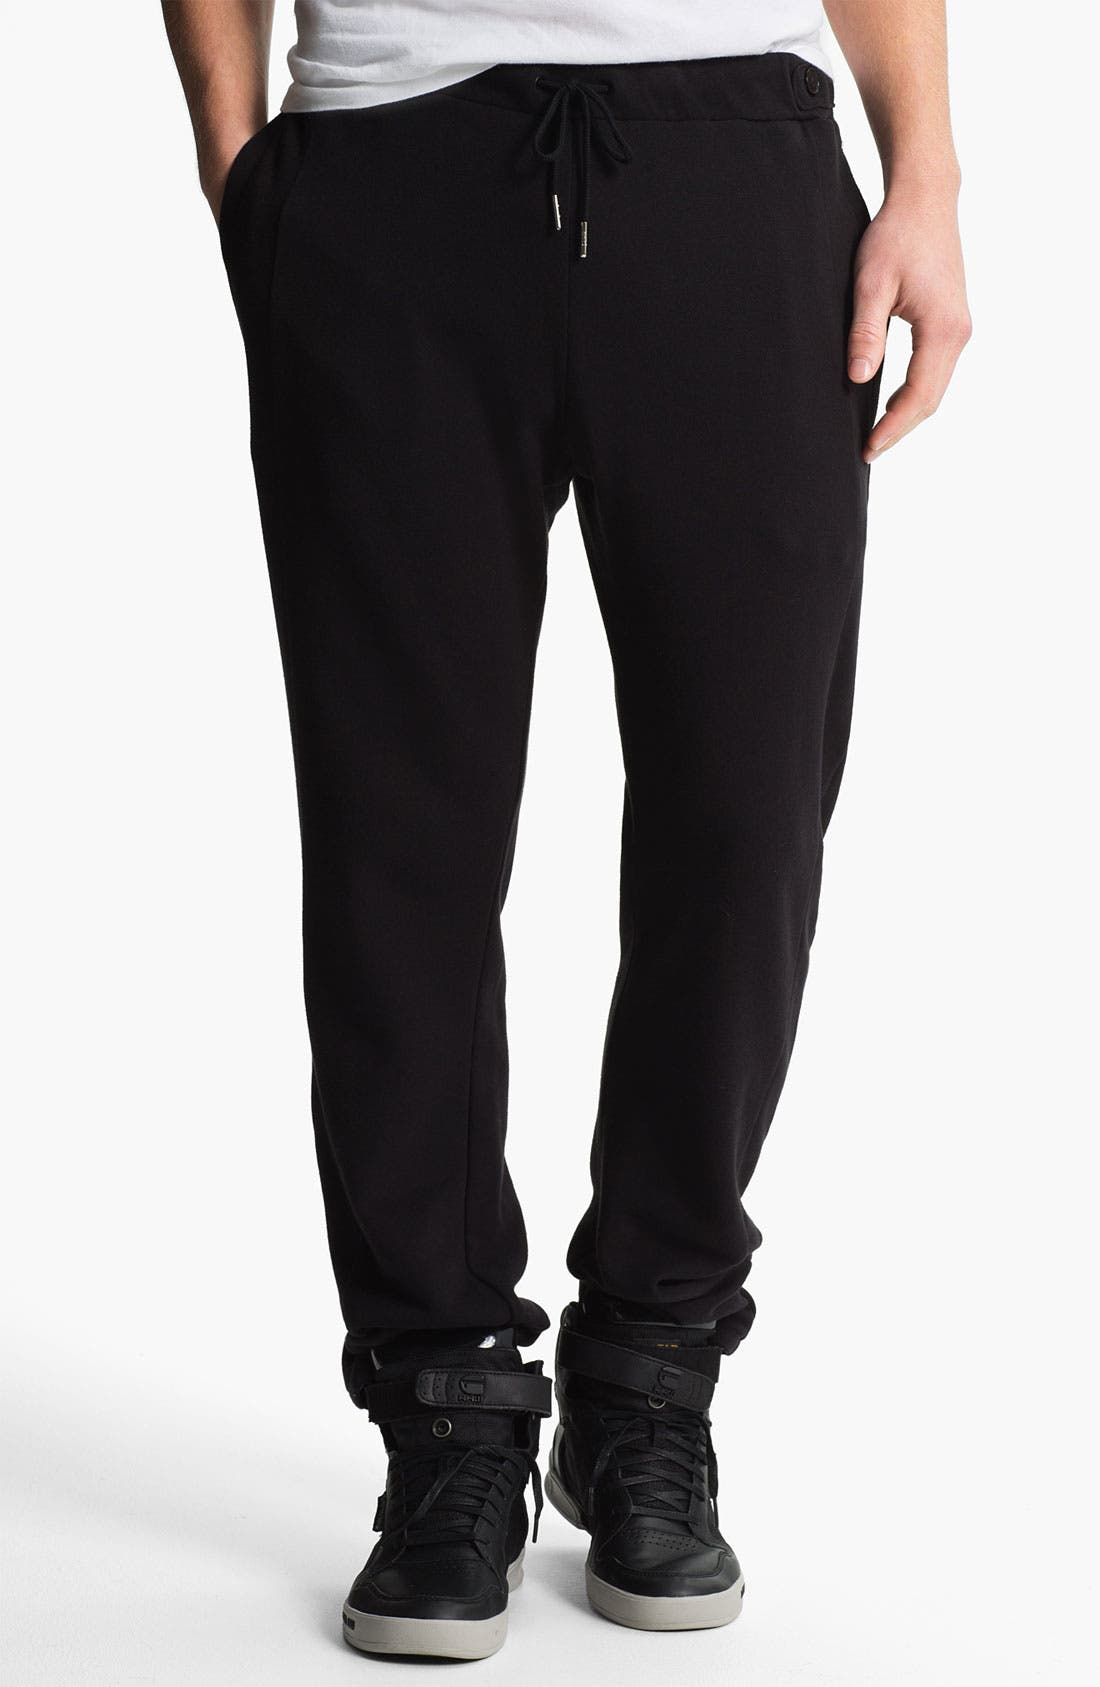 Main Image - adidas SLVR 'Curved' French Terry Cotton Sweatpants